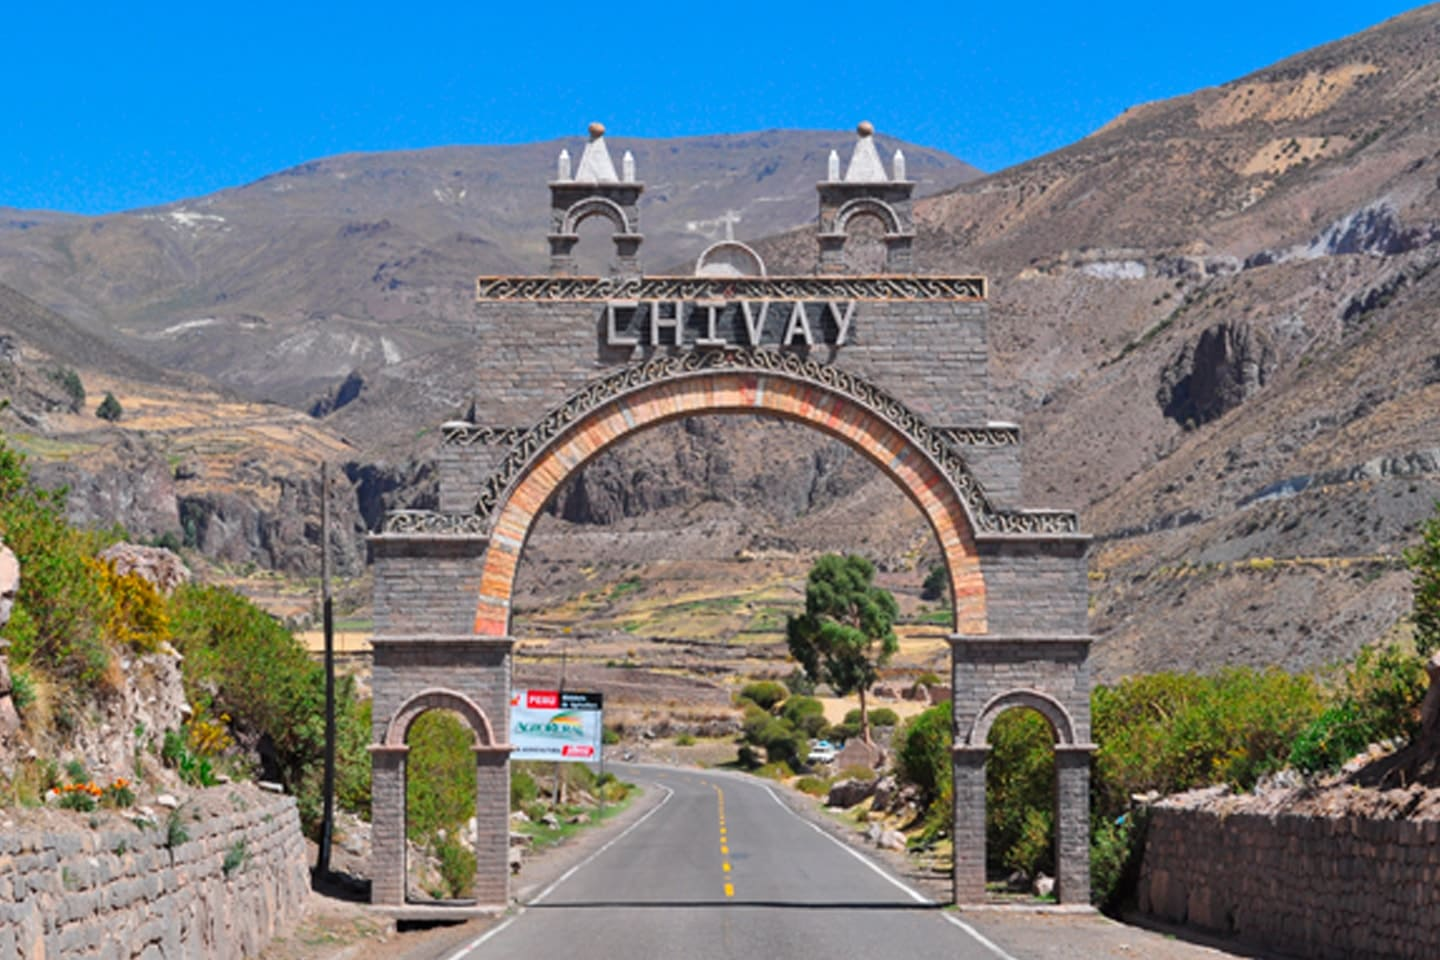 Chivay is a town in the Colca valley, capital of the Caylloma province in the Arequipa region, Peru. Located at about 12,000 ft above sea level, it lies upstream of the renowned Colca Canyon